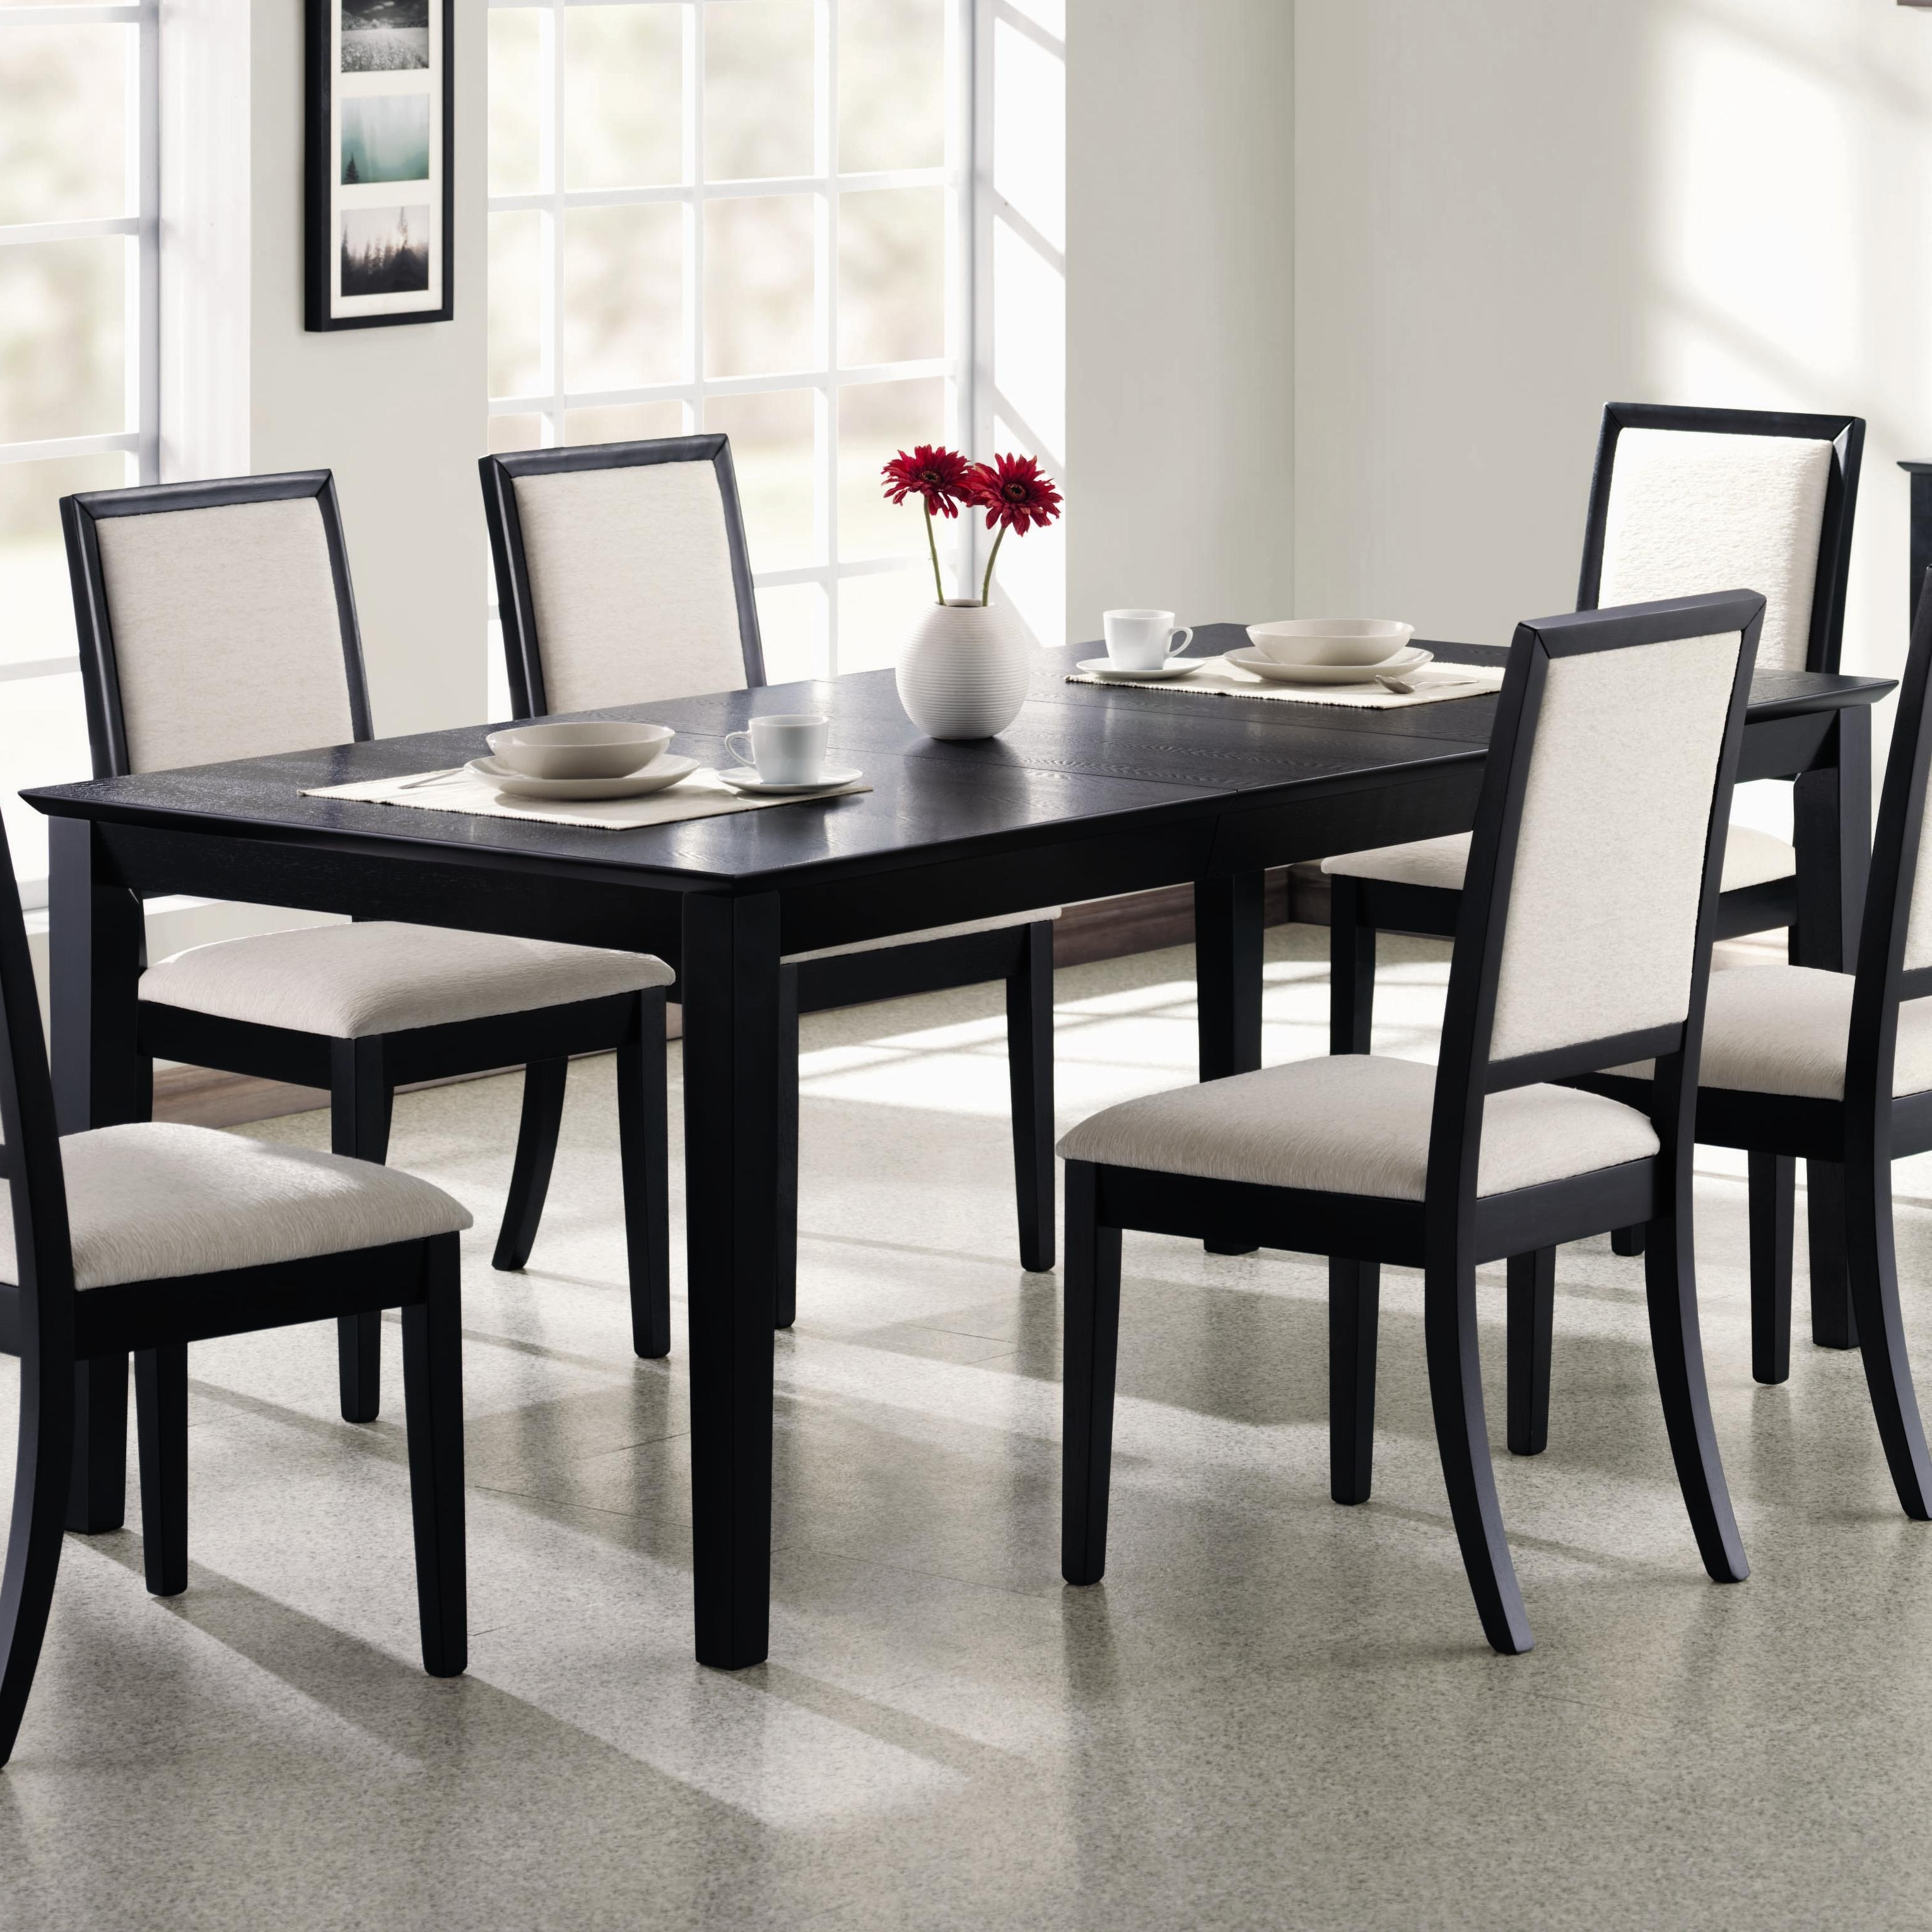 Dunk For Well Liked Rectangular Dining Tables Sets (Gallery 4 of 25)